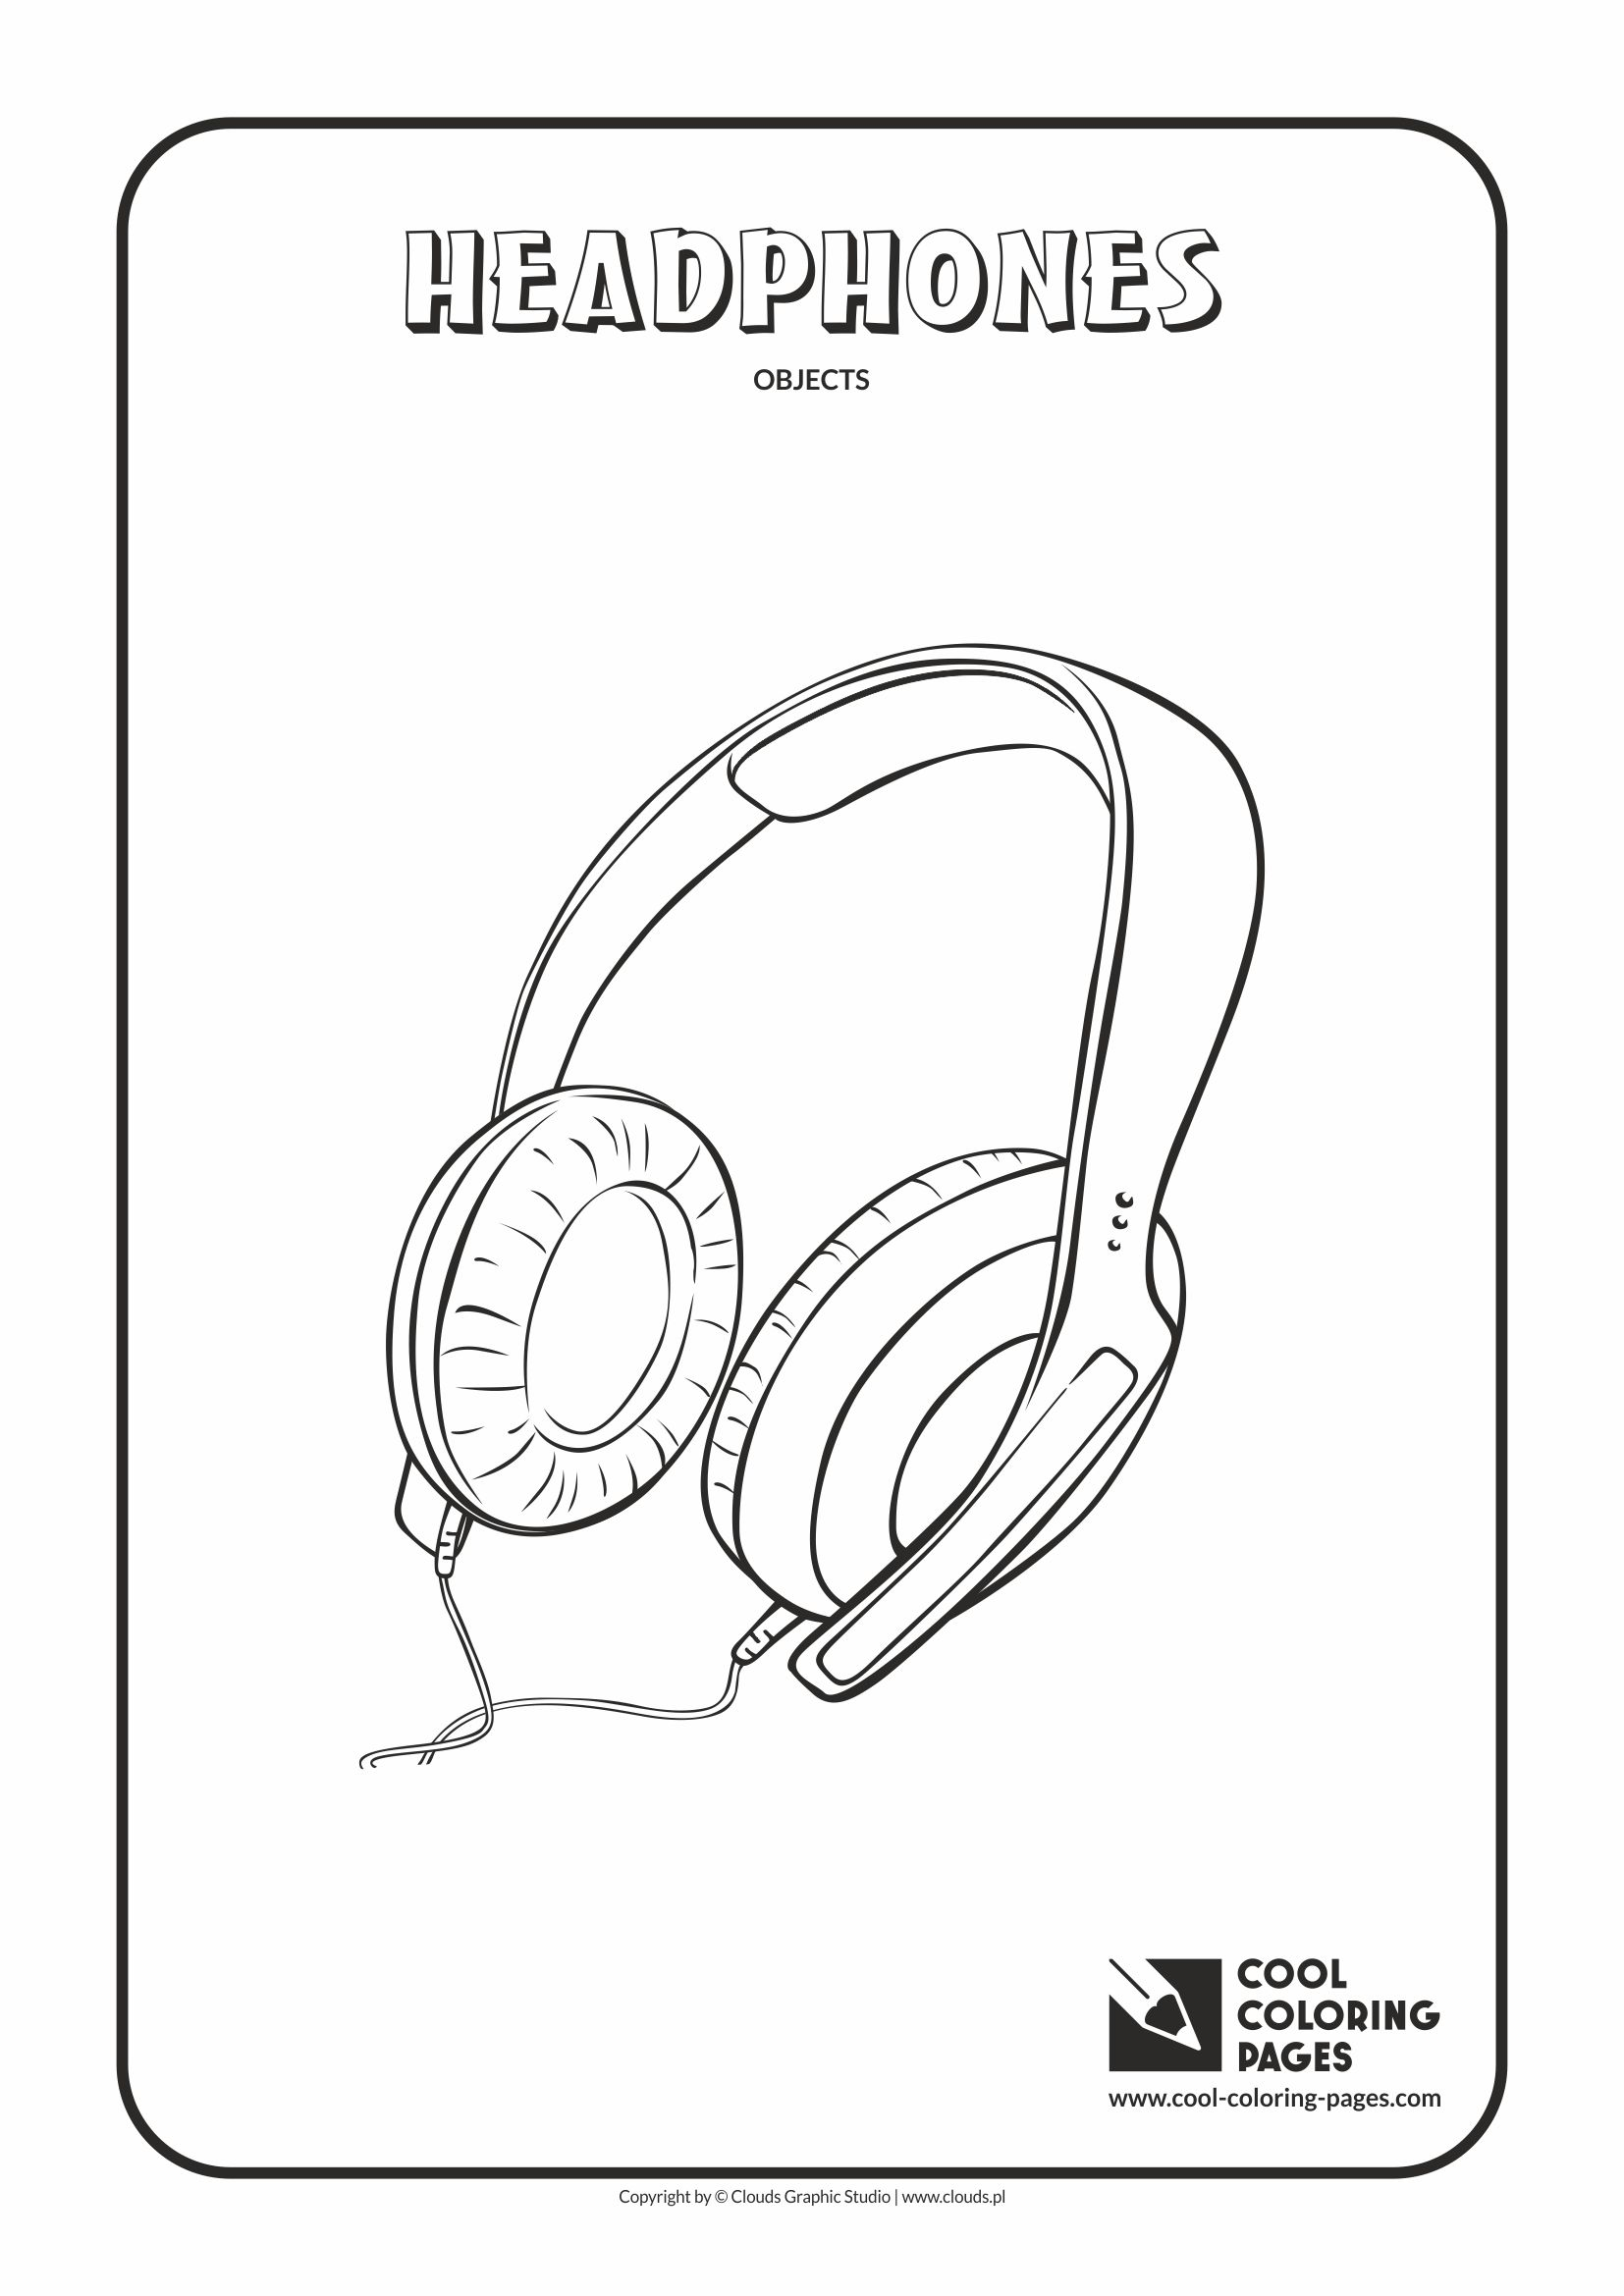 Cool Coloring Pages Coloring Objects Cool Coloring Pages